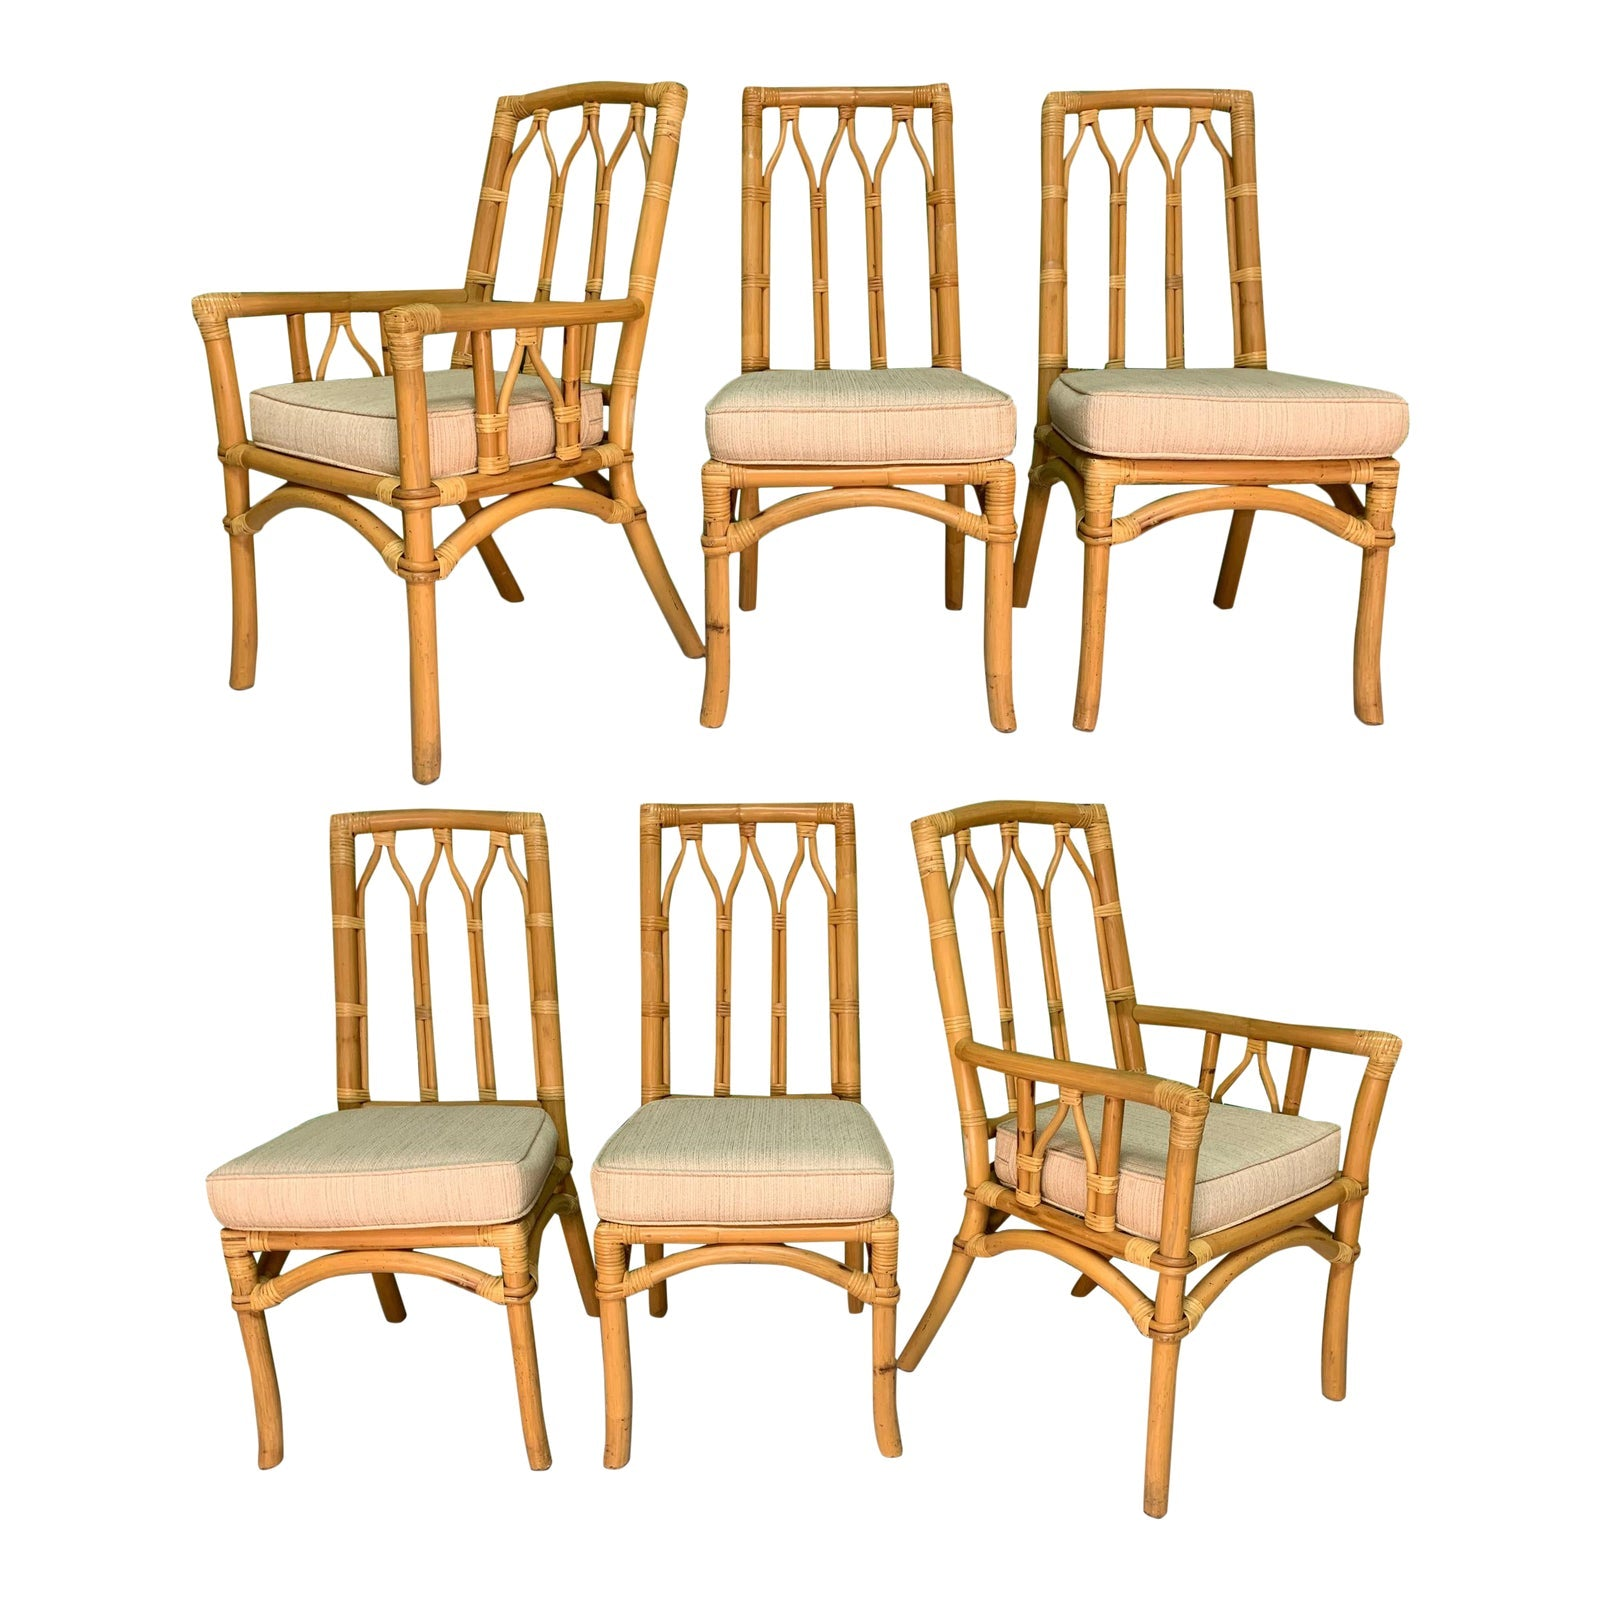 Vintage Rattan Cathedral Dining Chairs - Set of 6